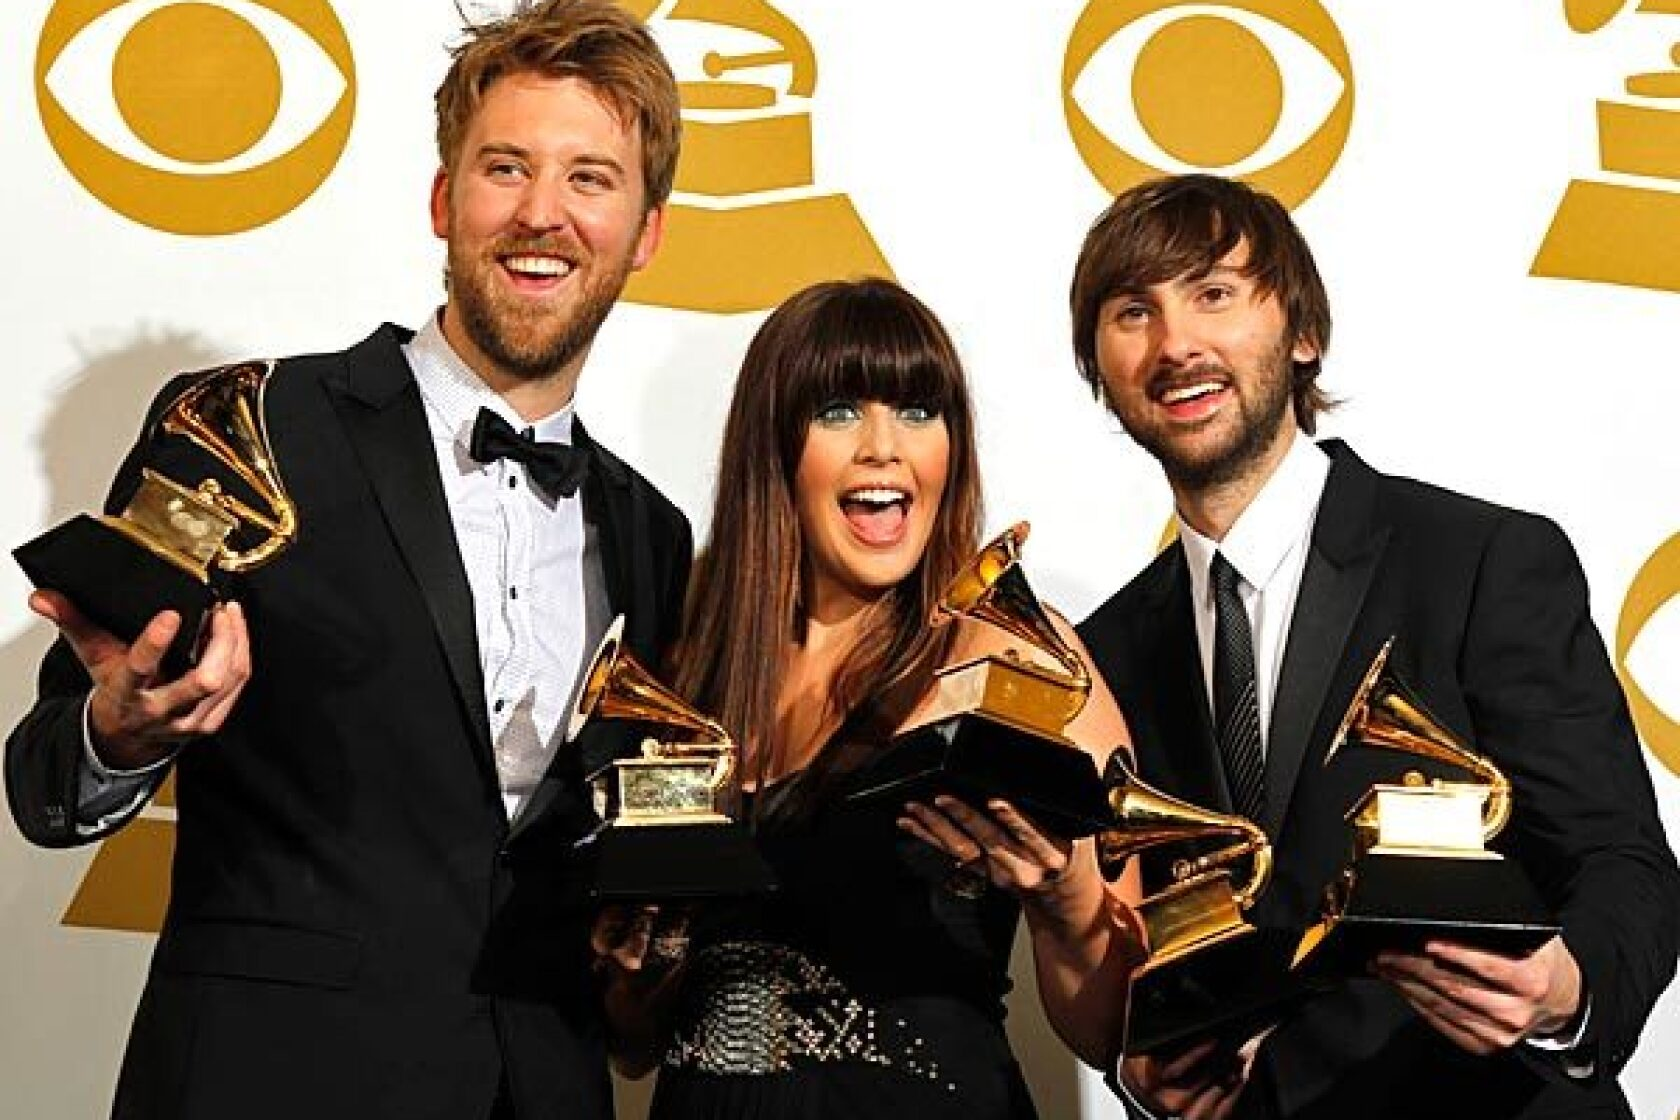 Amy Rose Sin Ropa grammy awards 2011: winners and nominees for 53rd grammy